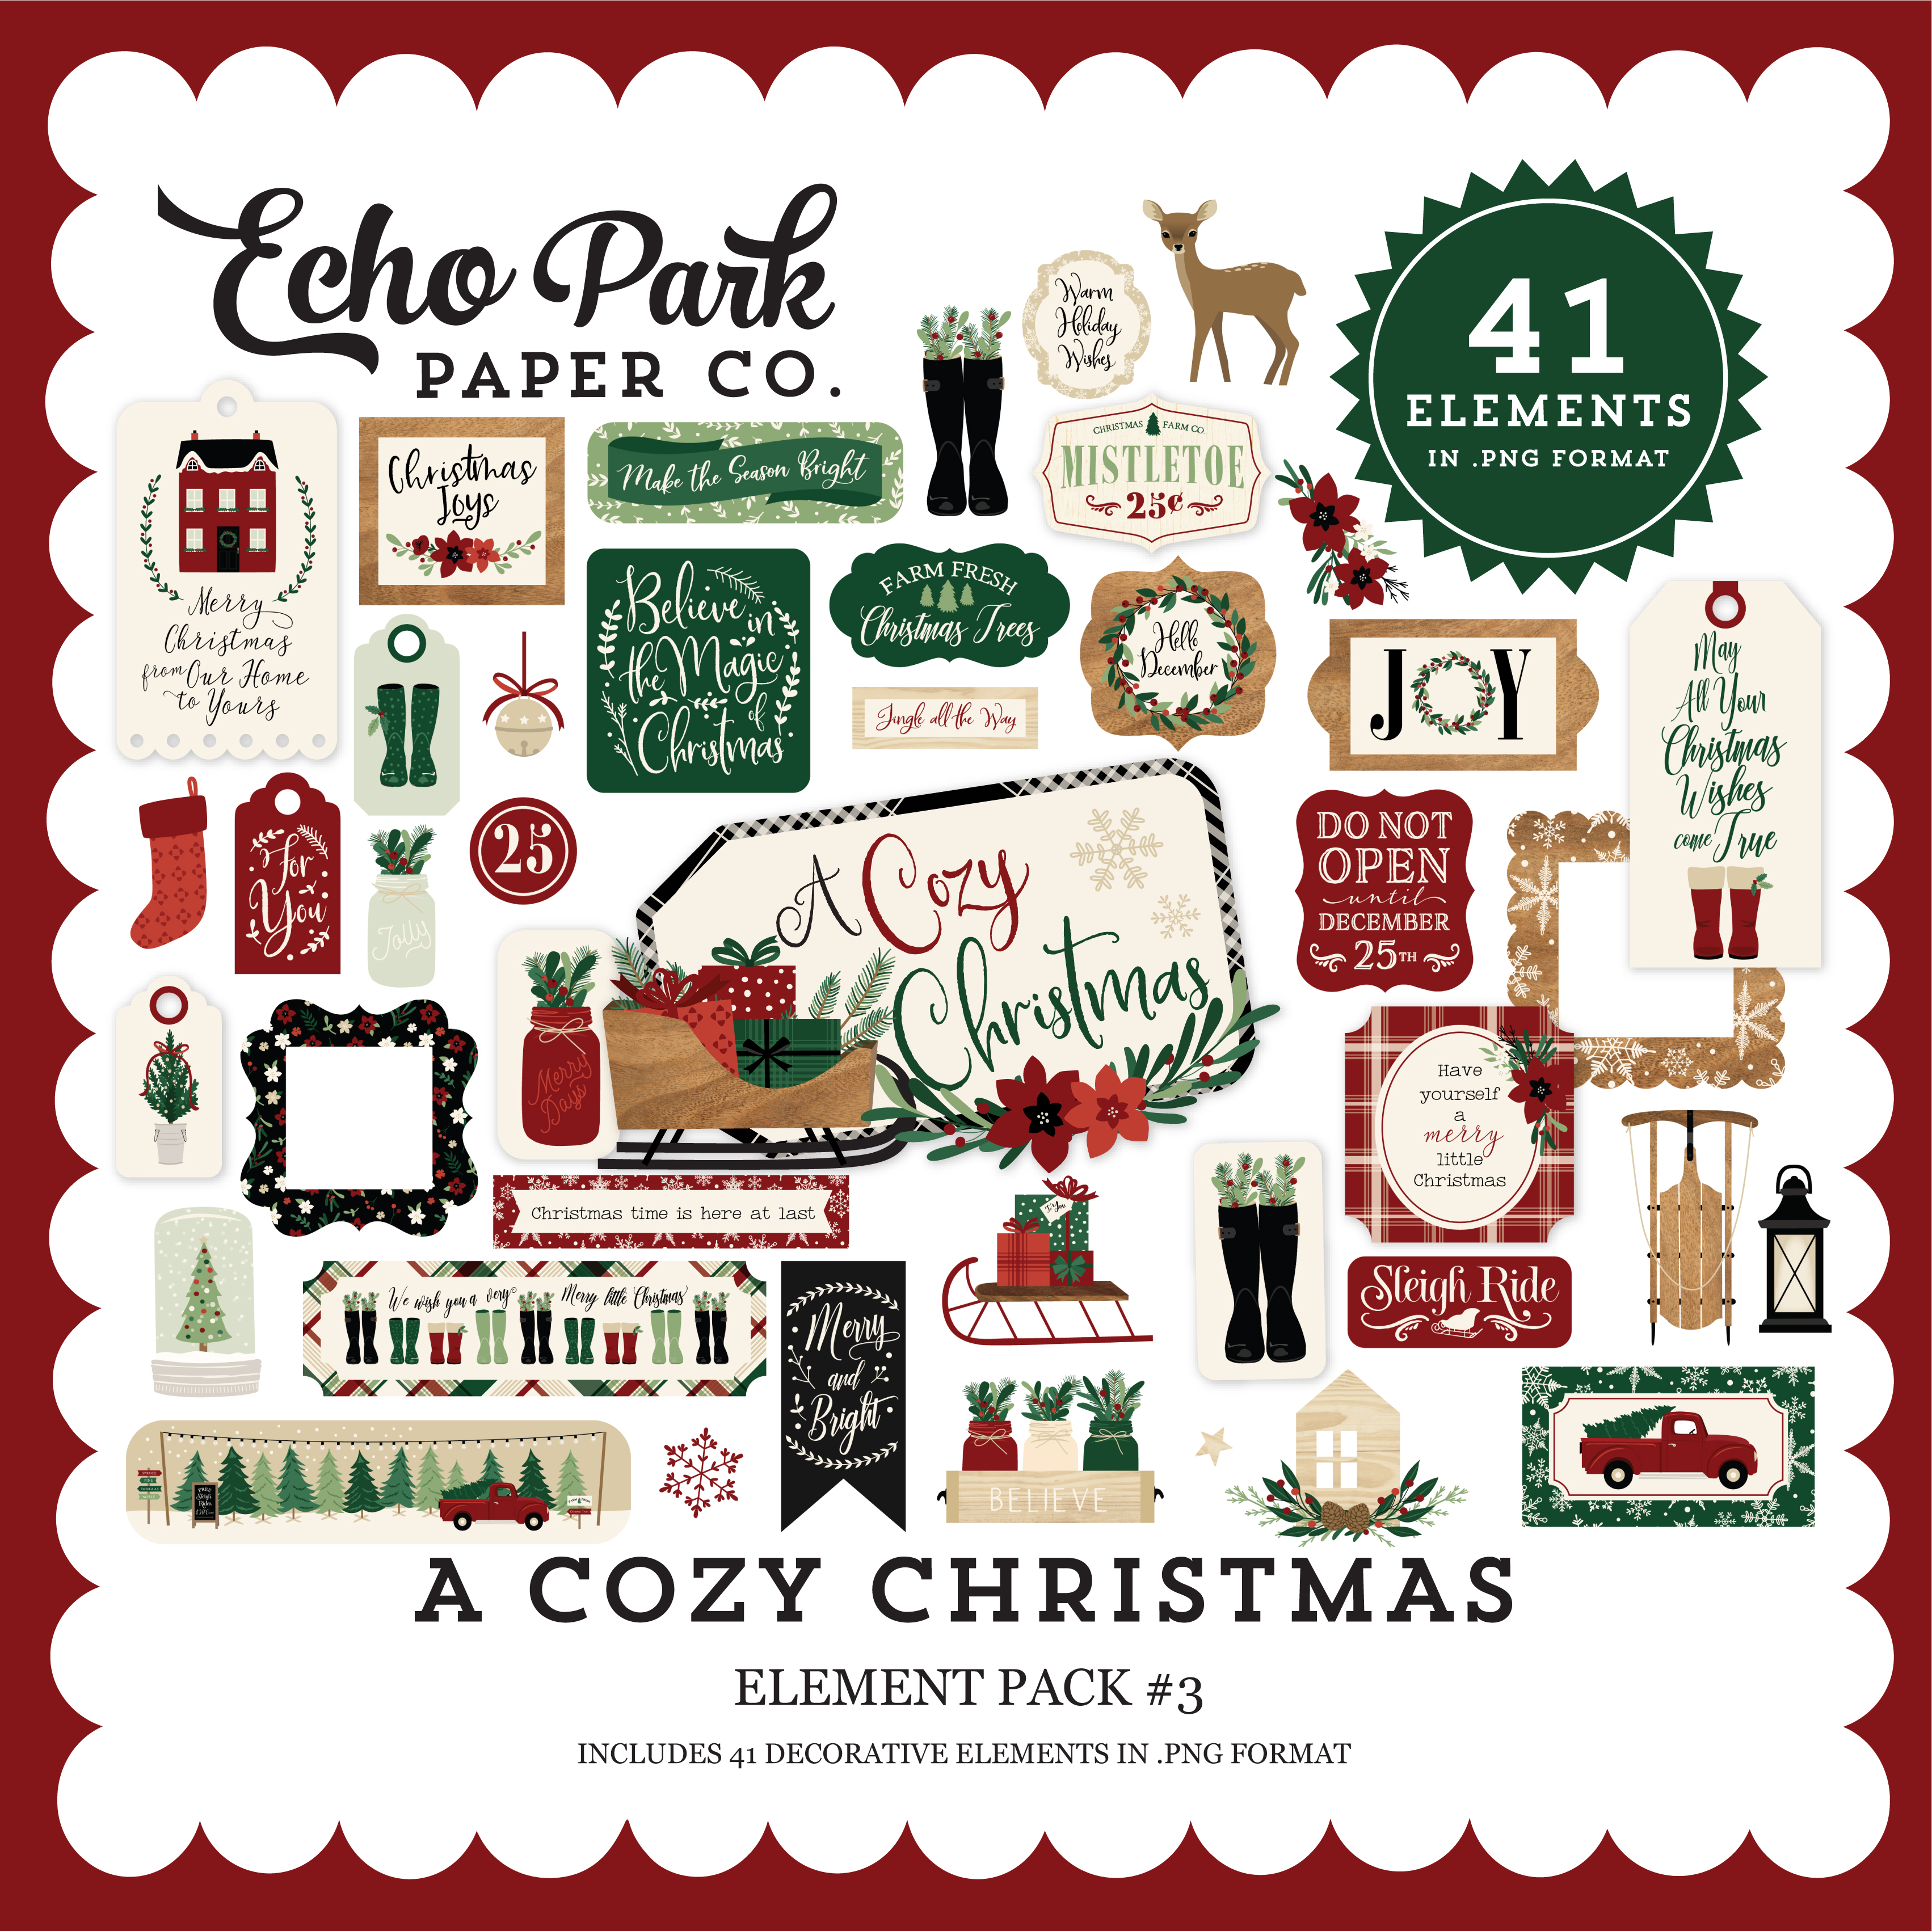 A Cozy Christmas Element Pack #3